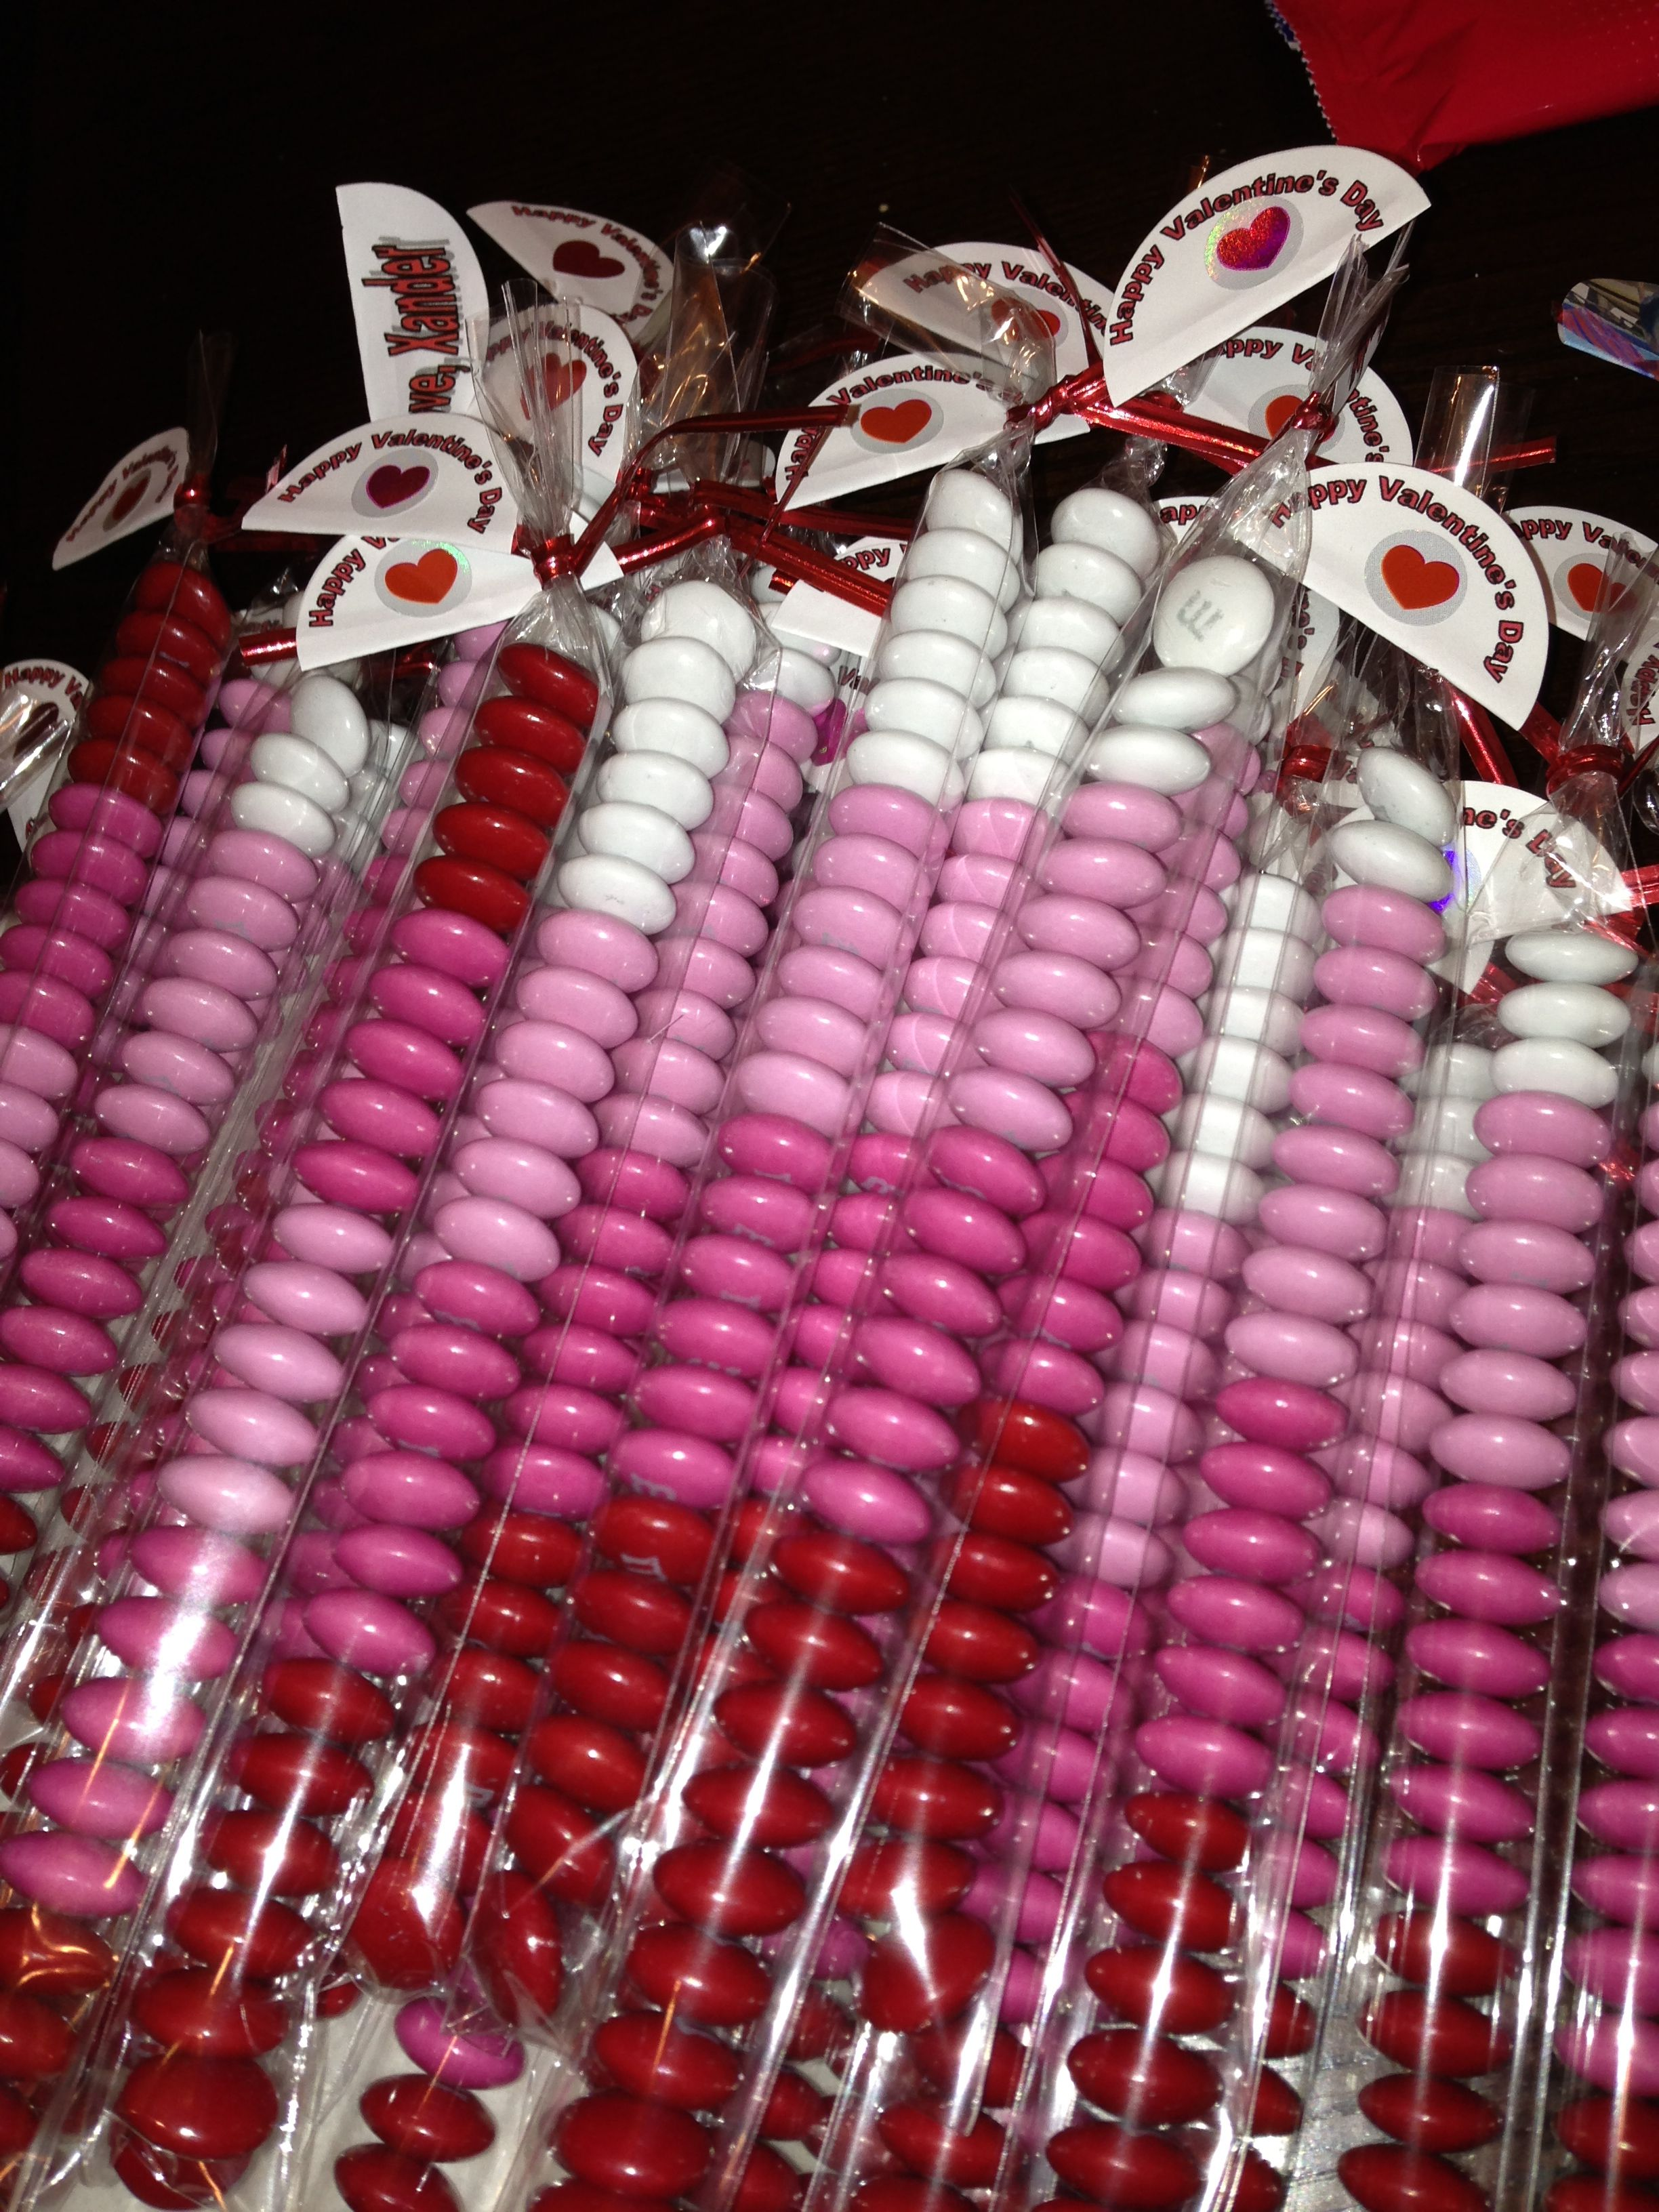 Valentine's Day m's sorted by color and stacked in a Heiko clear bag.